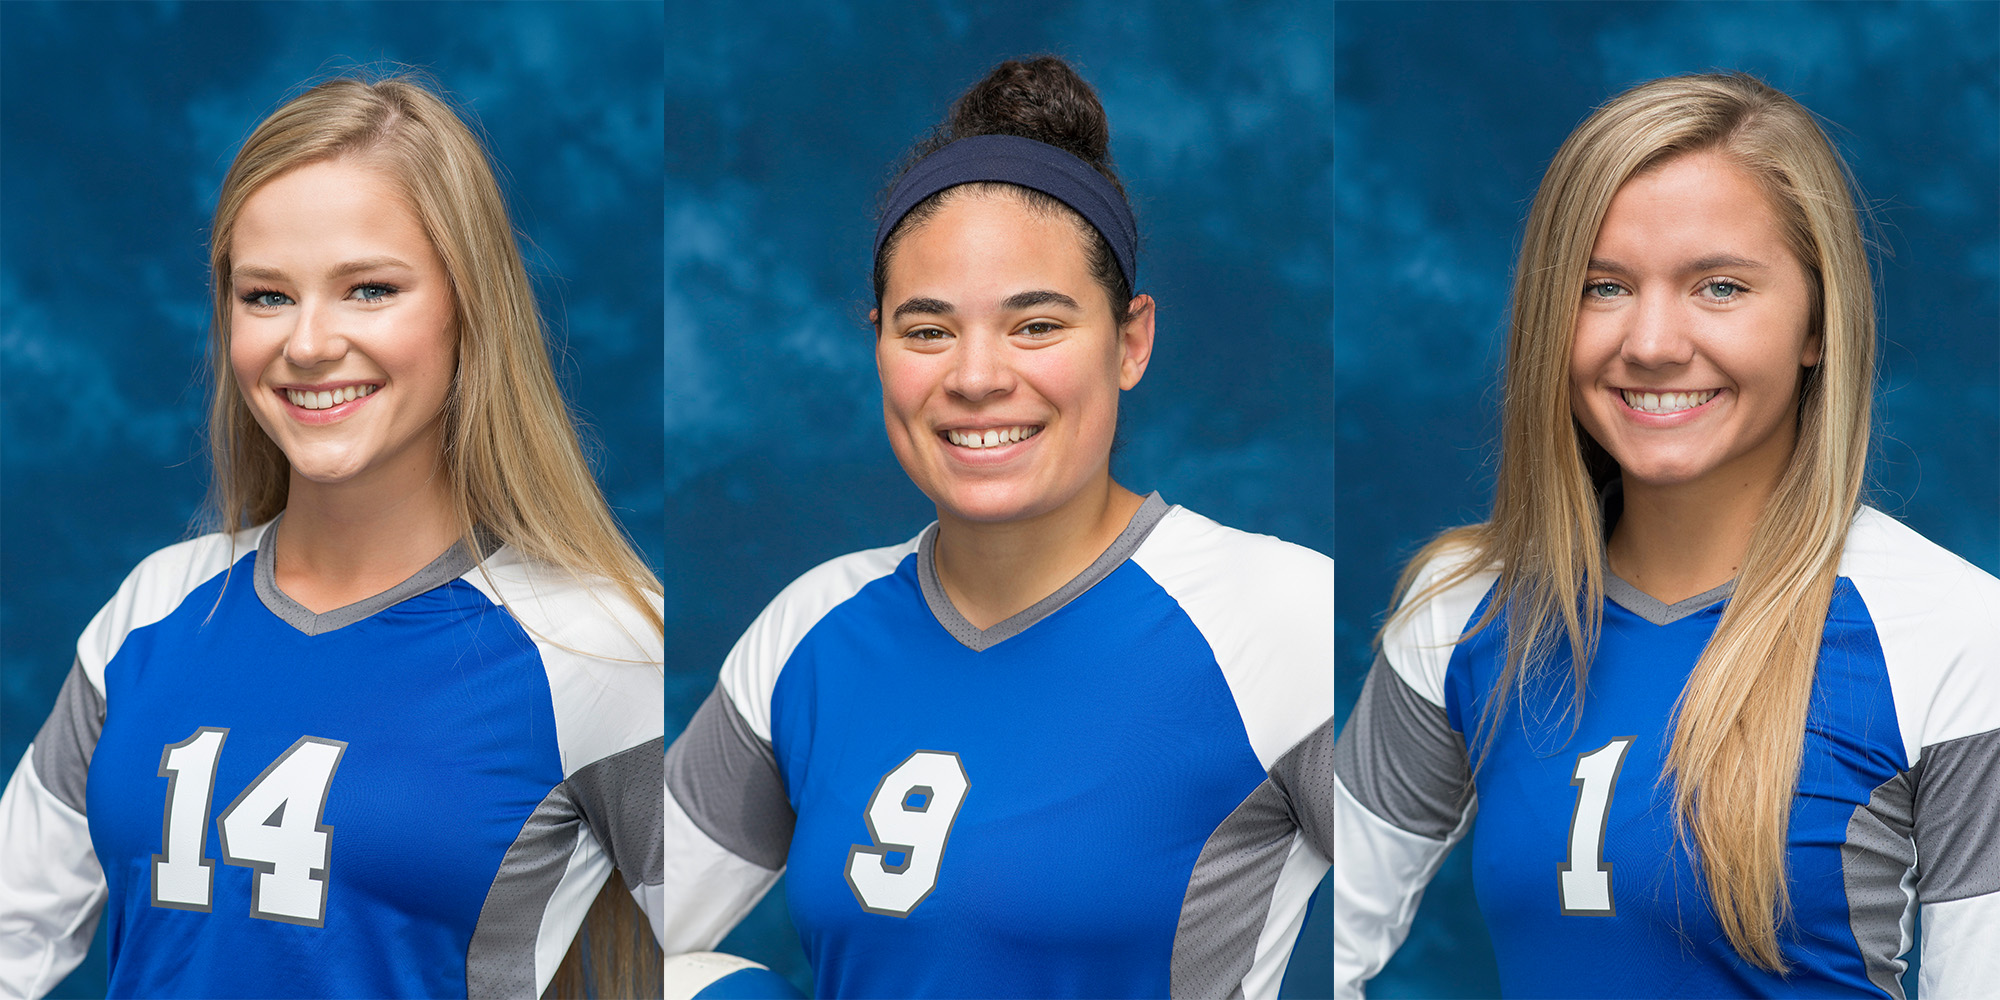 KCC volleyball players Grace Hall, Madison Jones and Haidyn Markos.